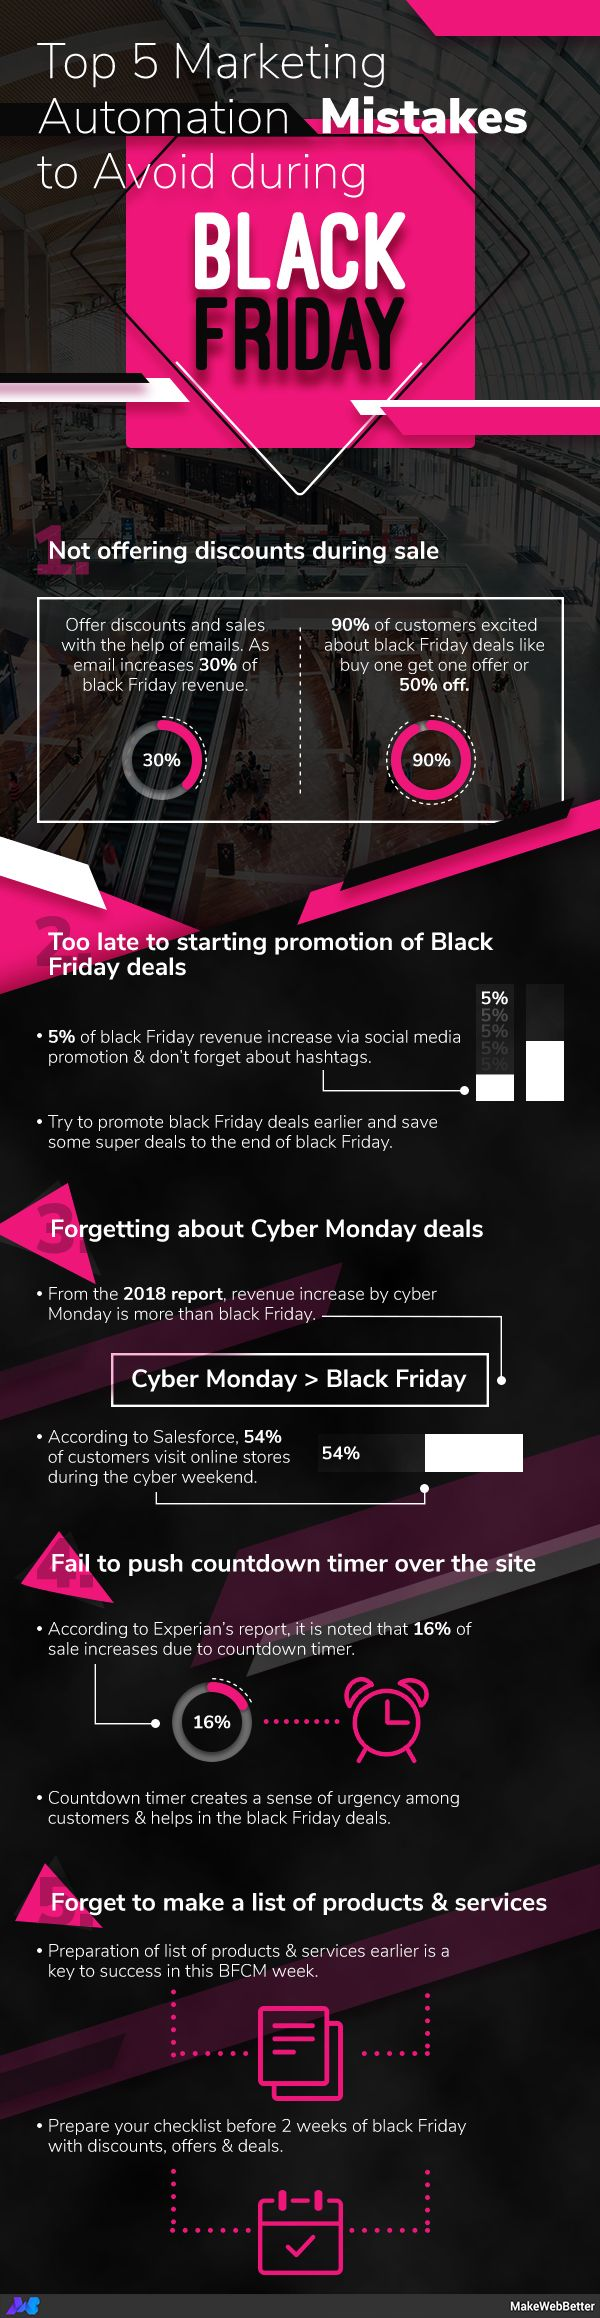 Explode Your 2020 Bfcm Sales With 10 Simple Tips Makewebbetter Black Friday Marketing Automation Best Cyber Monday